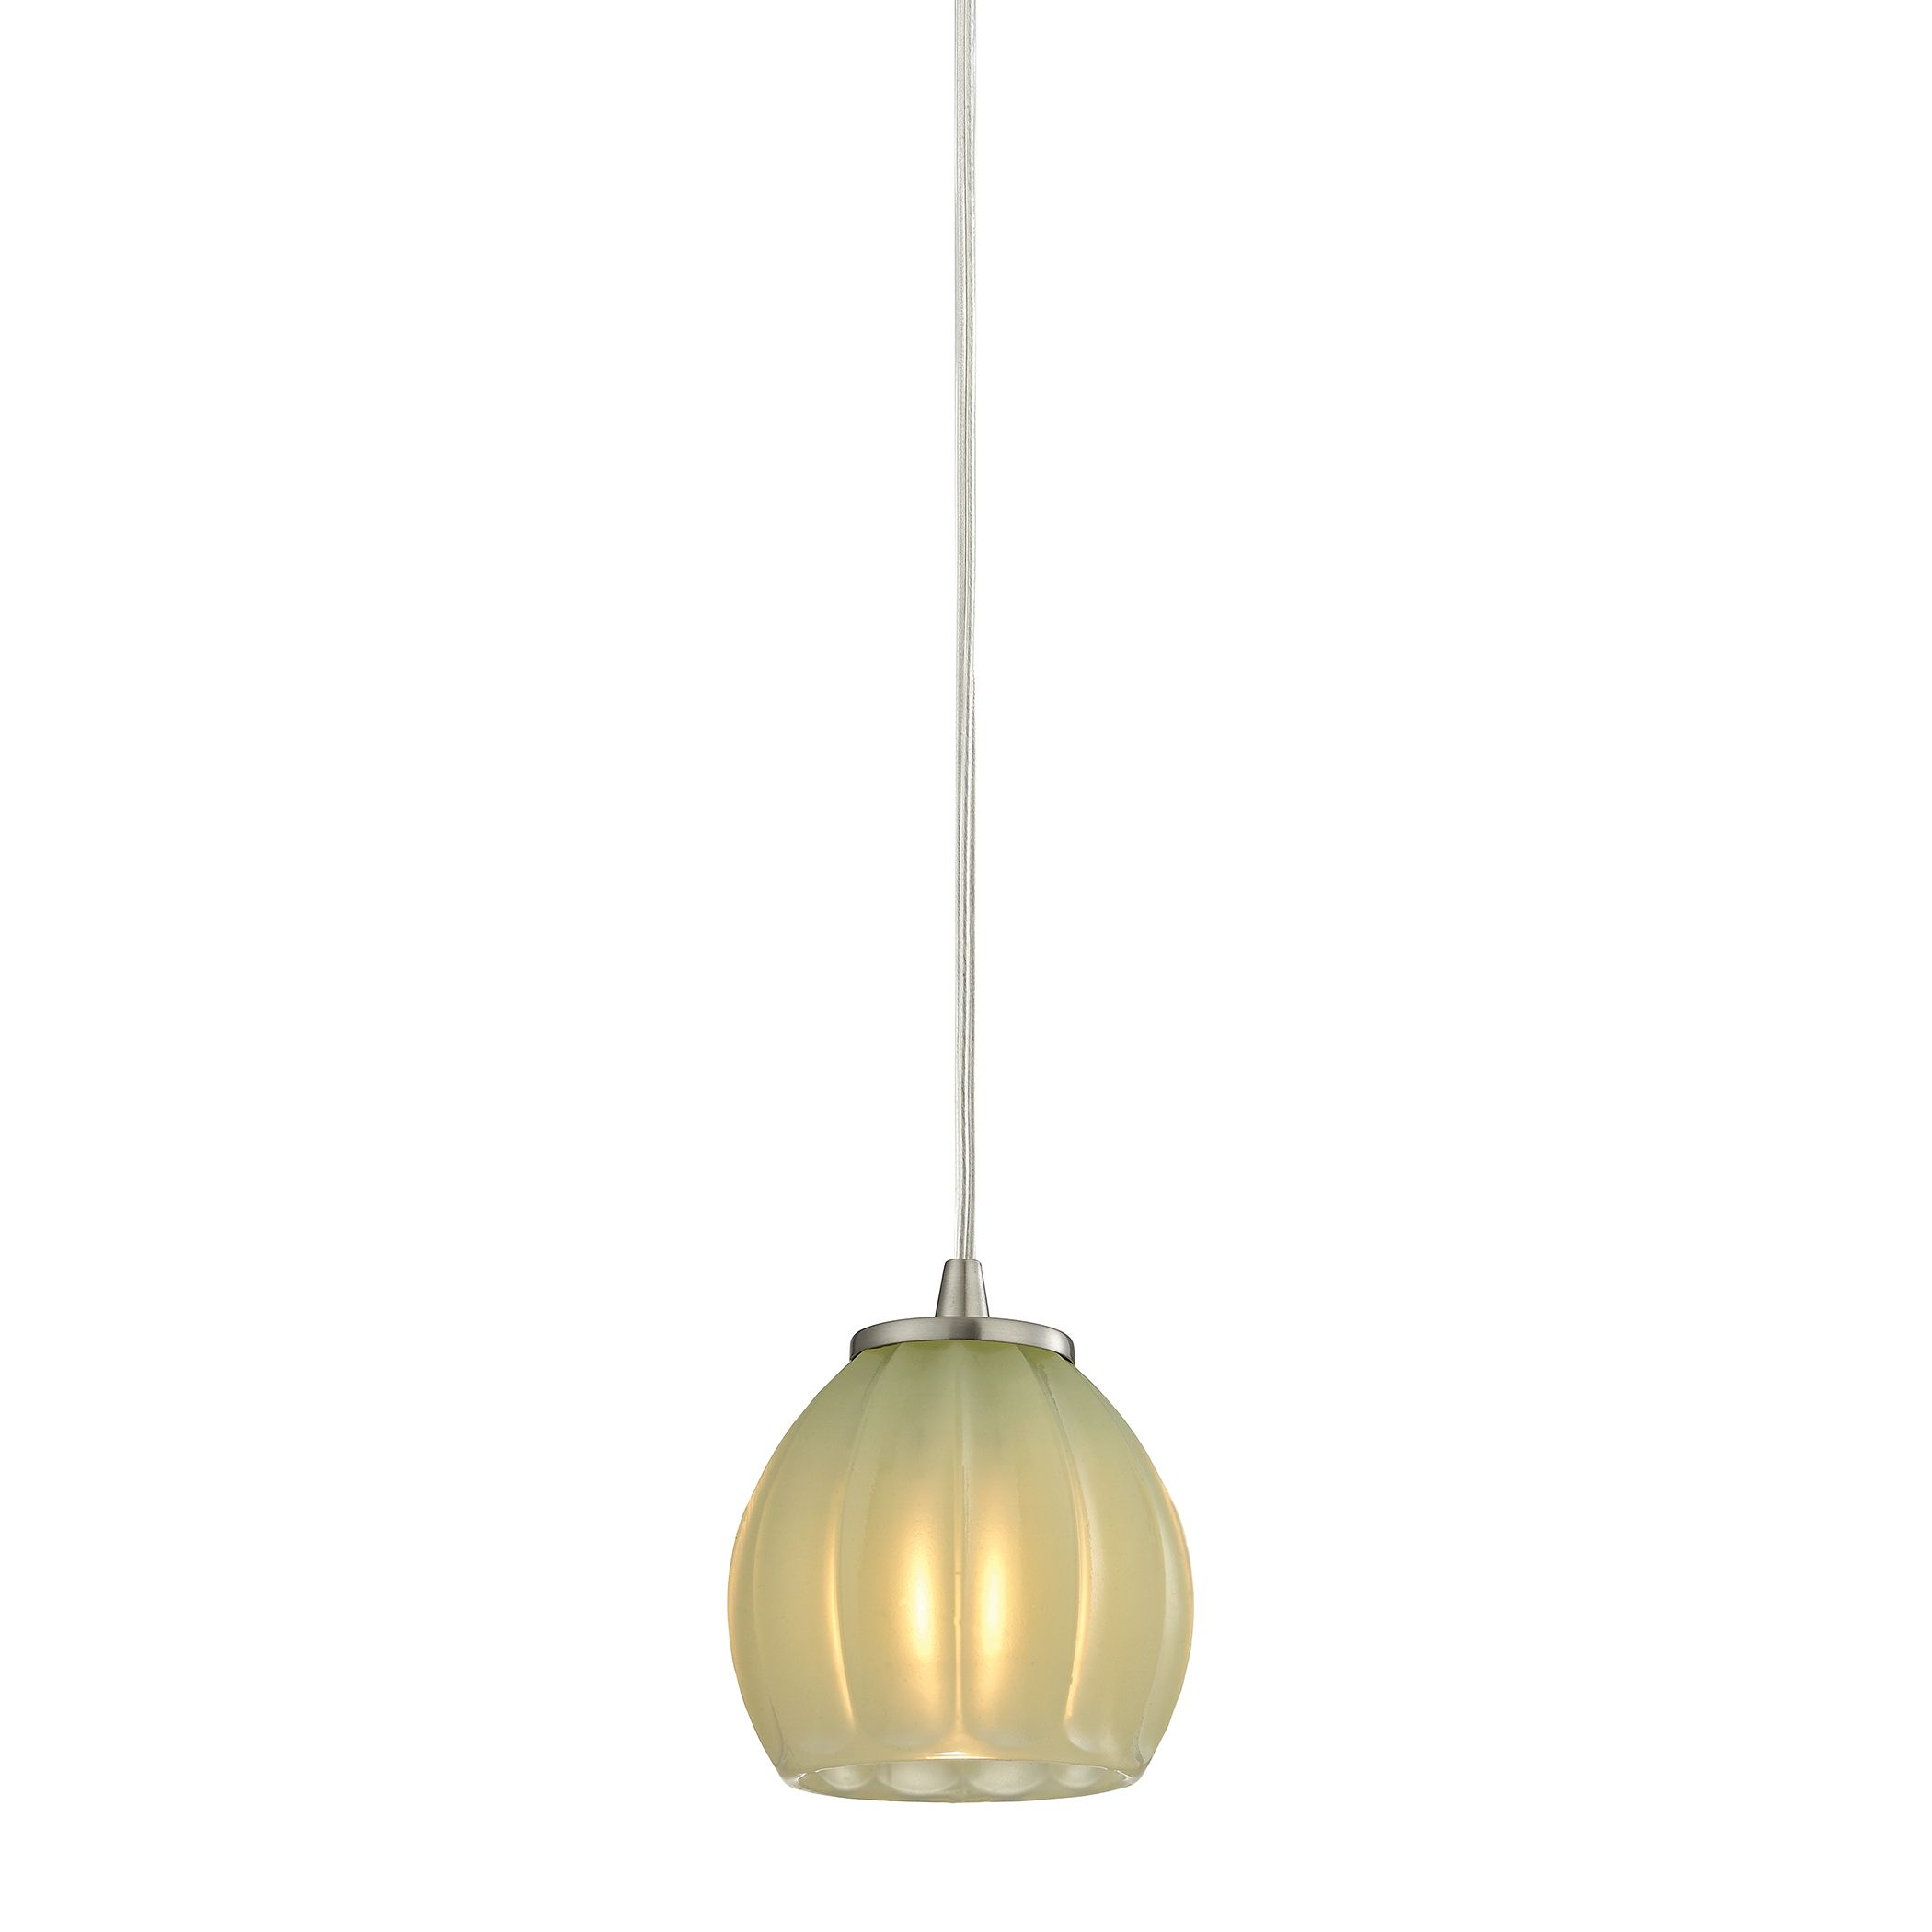 Melony 1 Light Pendant in Satin Nickel and Jade Glass